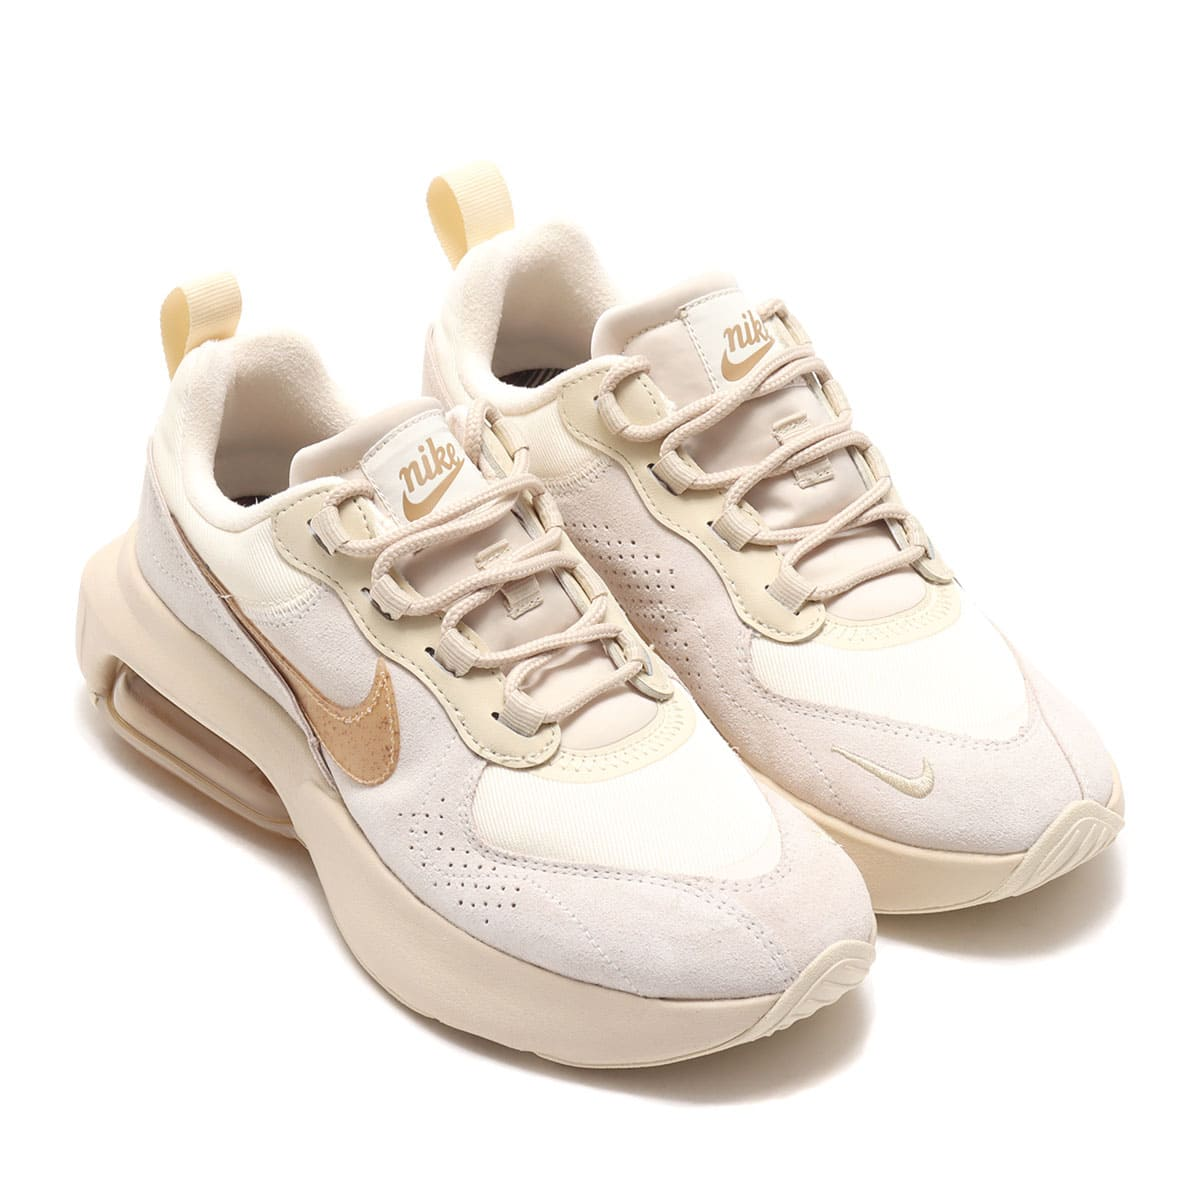 NIKE W AIR MAX VERONA PALE IVORY/SESAME-GRAIN-GUM LIGHT BROWN 21SP-I_photo_large